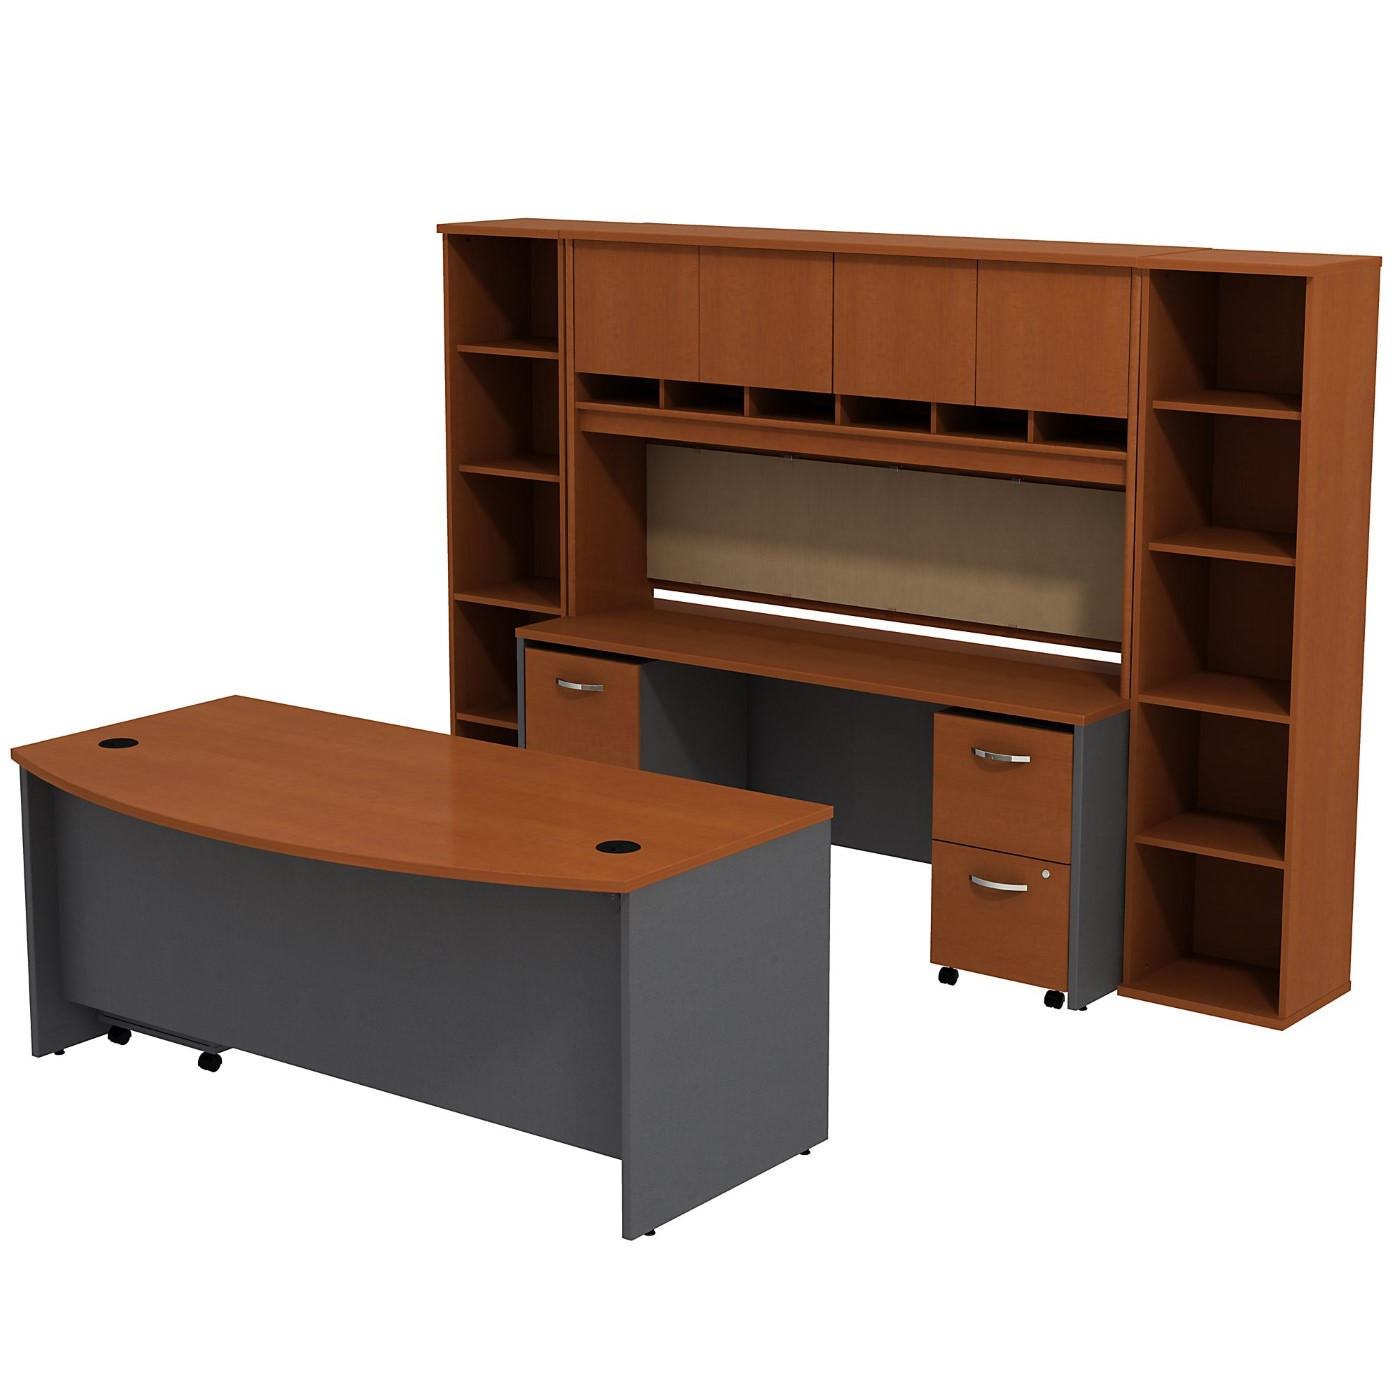 BUSH BUSINESS FURNITURE SERIES C BOW FRONT DESK WITH CREDENZA, HUTCH AND (2) BOOKCASES. FREE SHIPPING